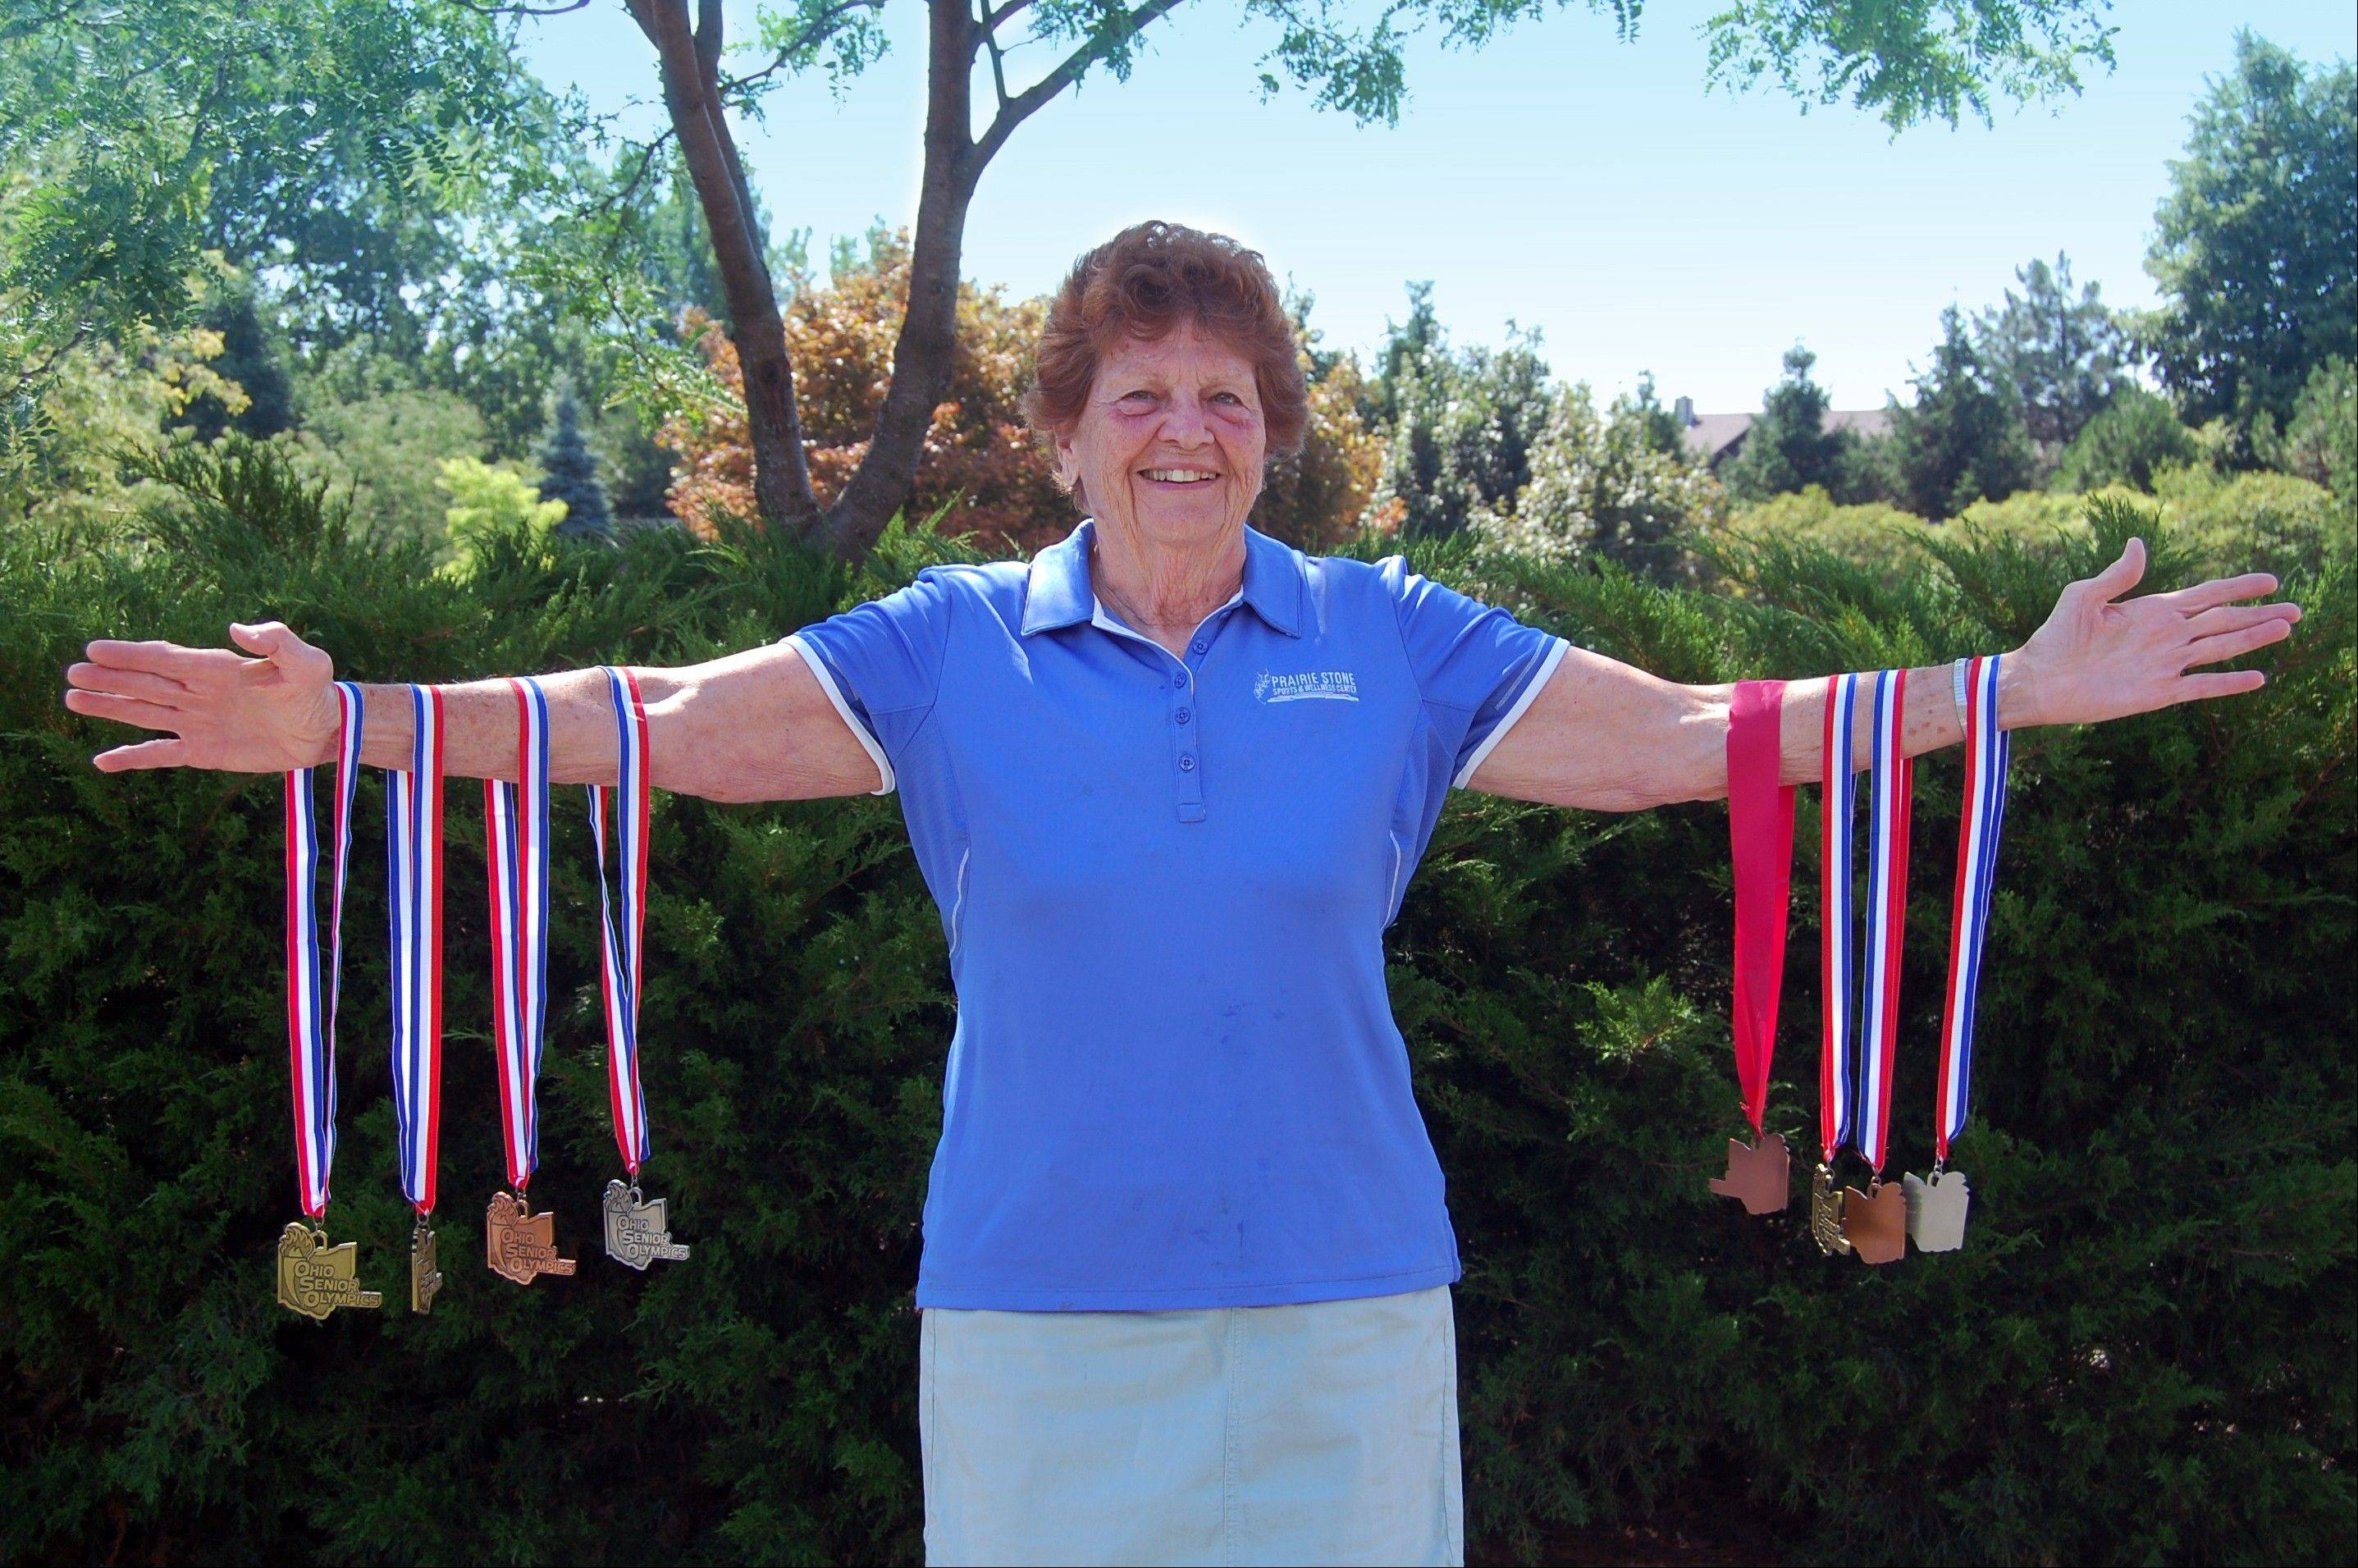 Lollie Guiney, a Hoffman Estates Park District board commissioner, won eight medals in a Senior Olympics competition in July in Ohio.